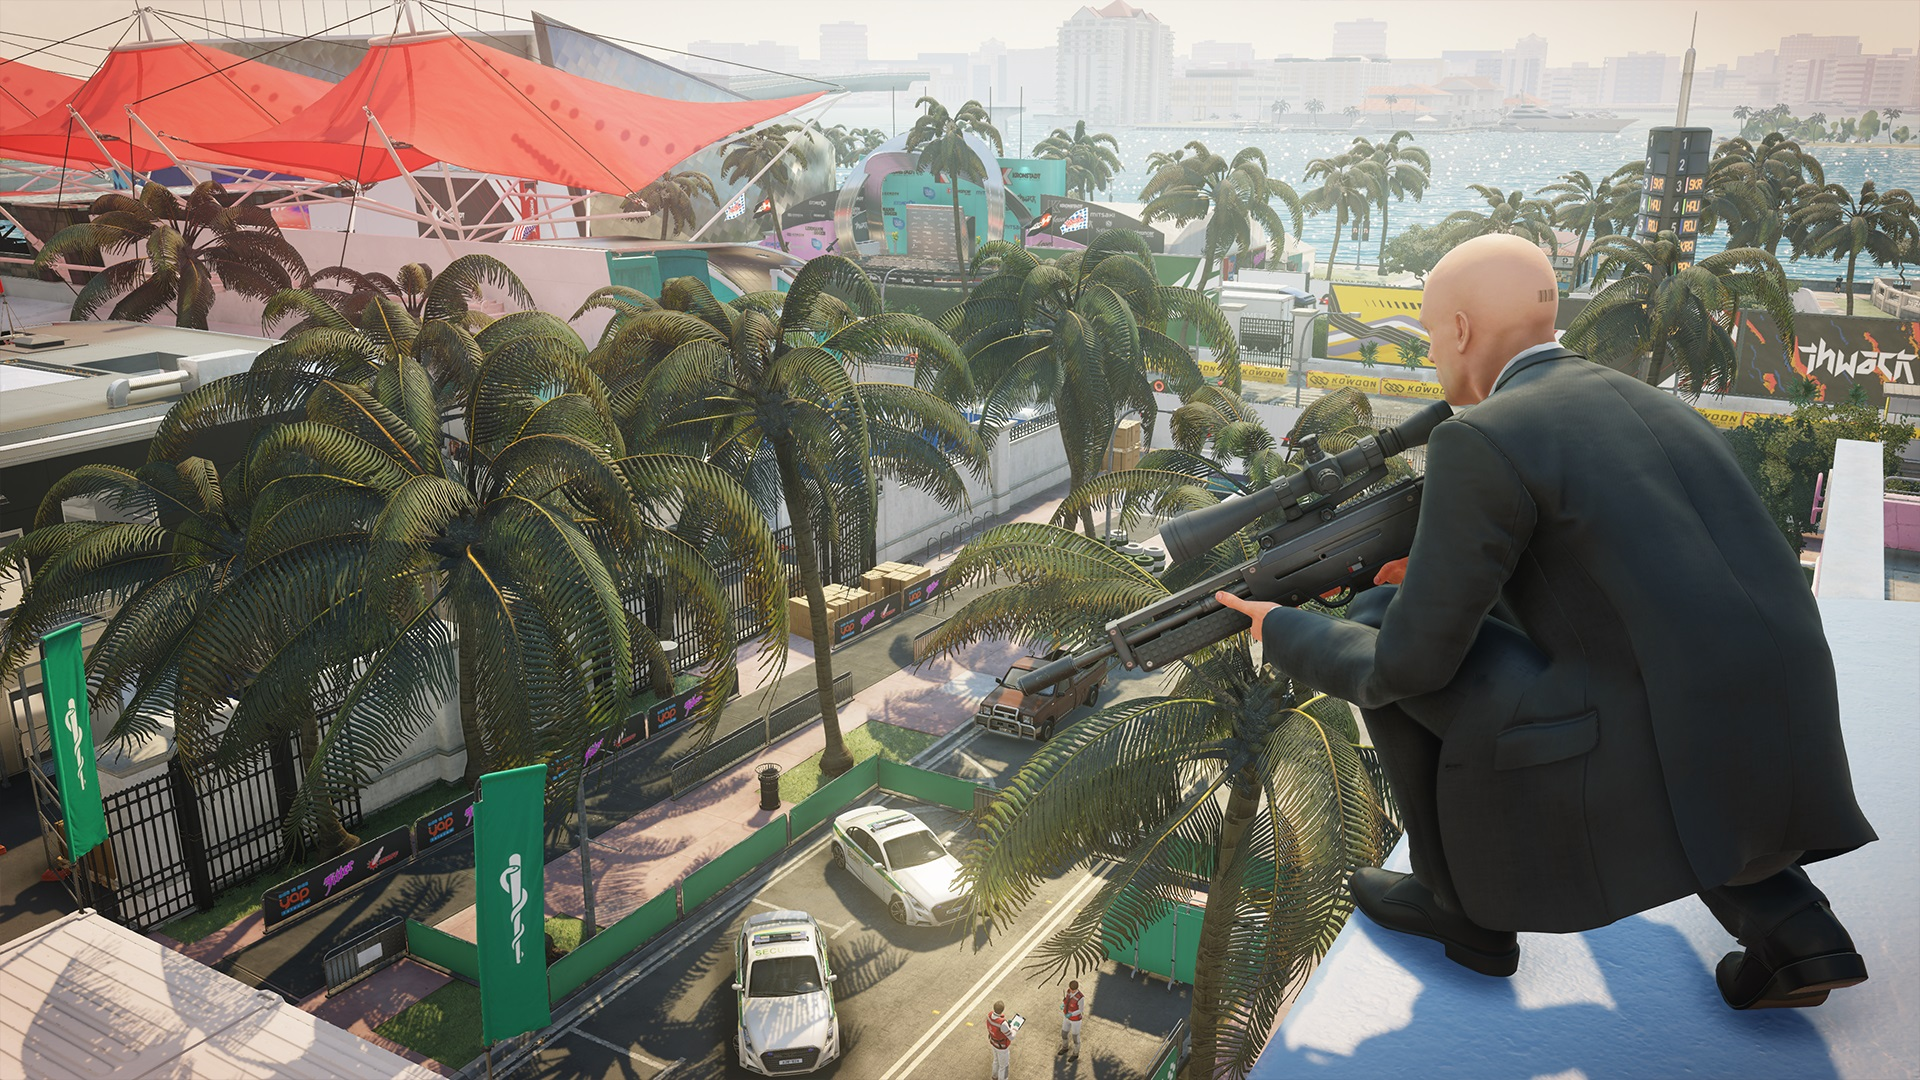 Agent 47 perched on a rooftop with a sniper rifle.